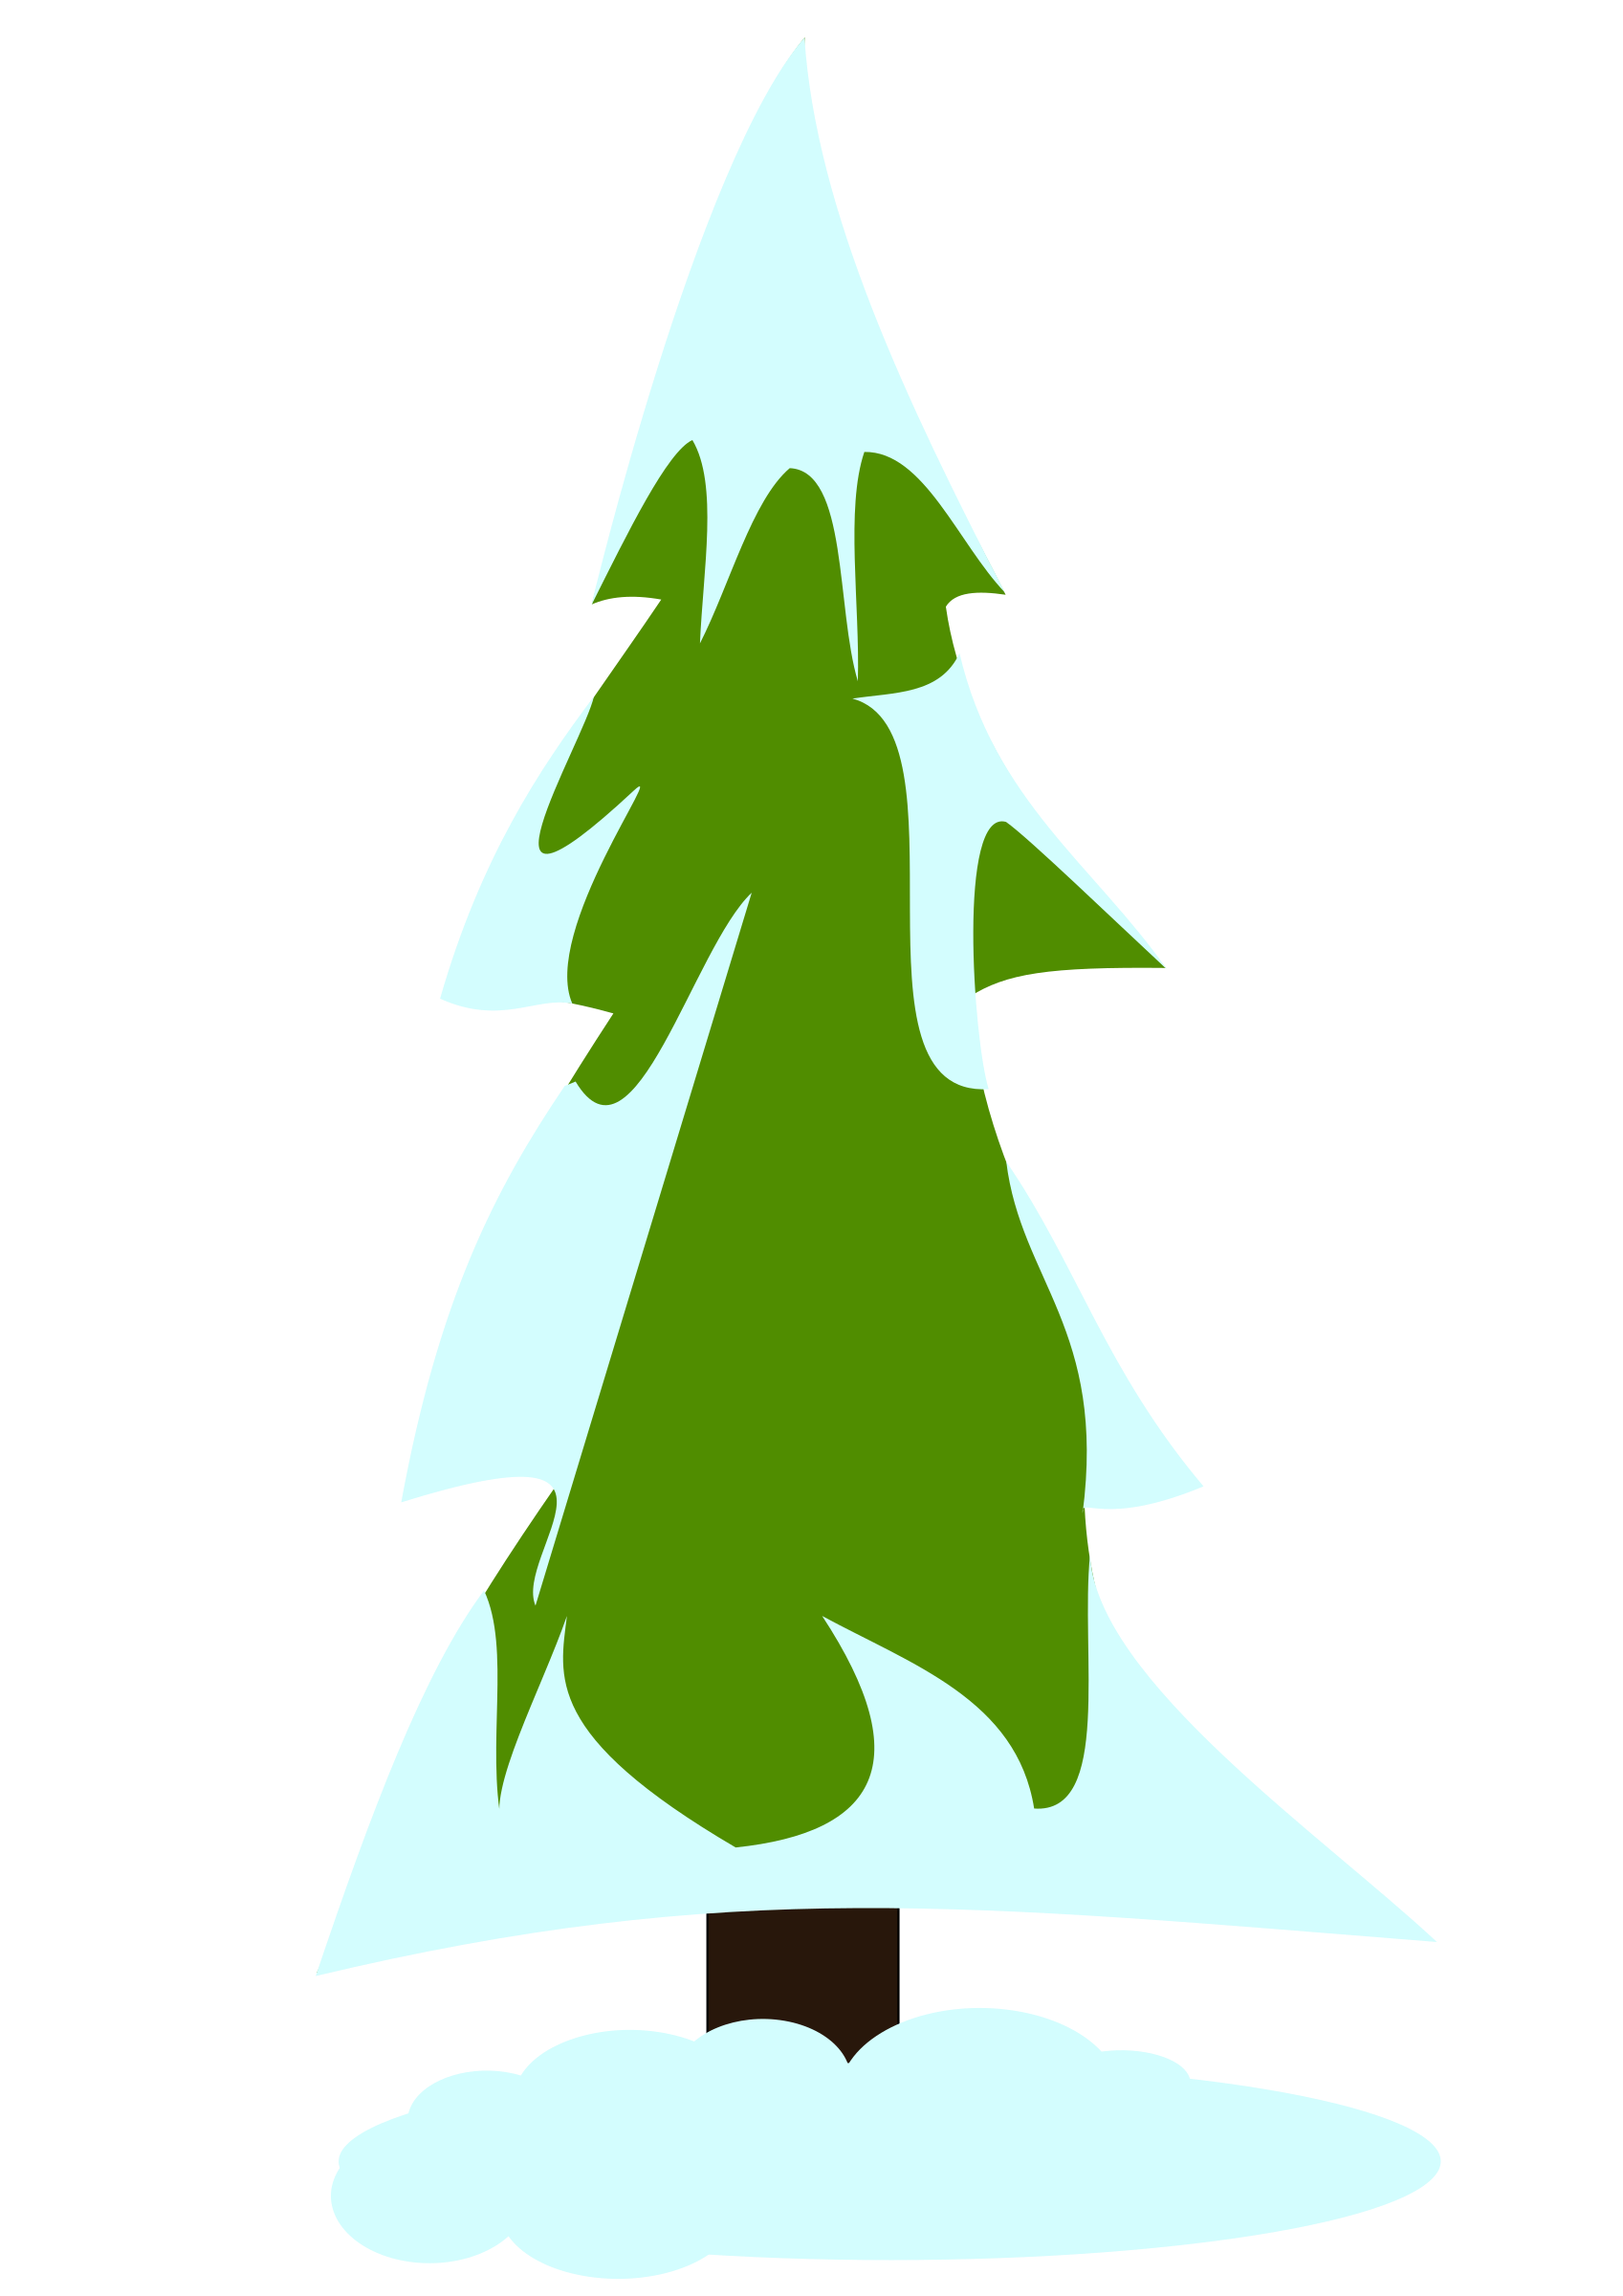 Snow tree clipart jpg royalty free library Clipart - Snowy pine tree jpg royalty free library